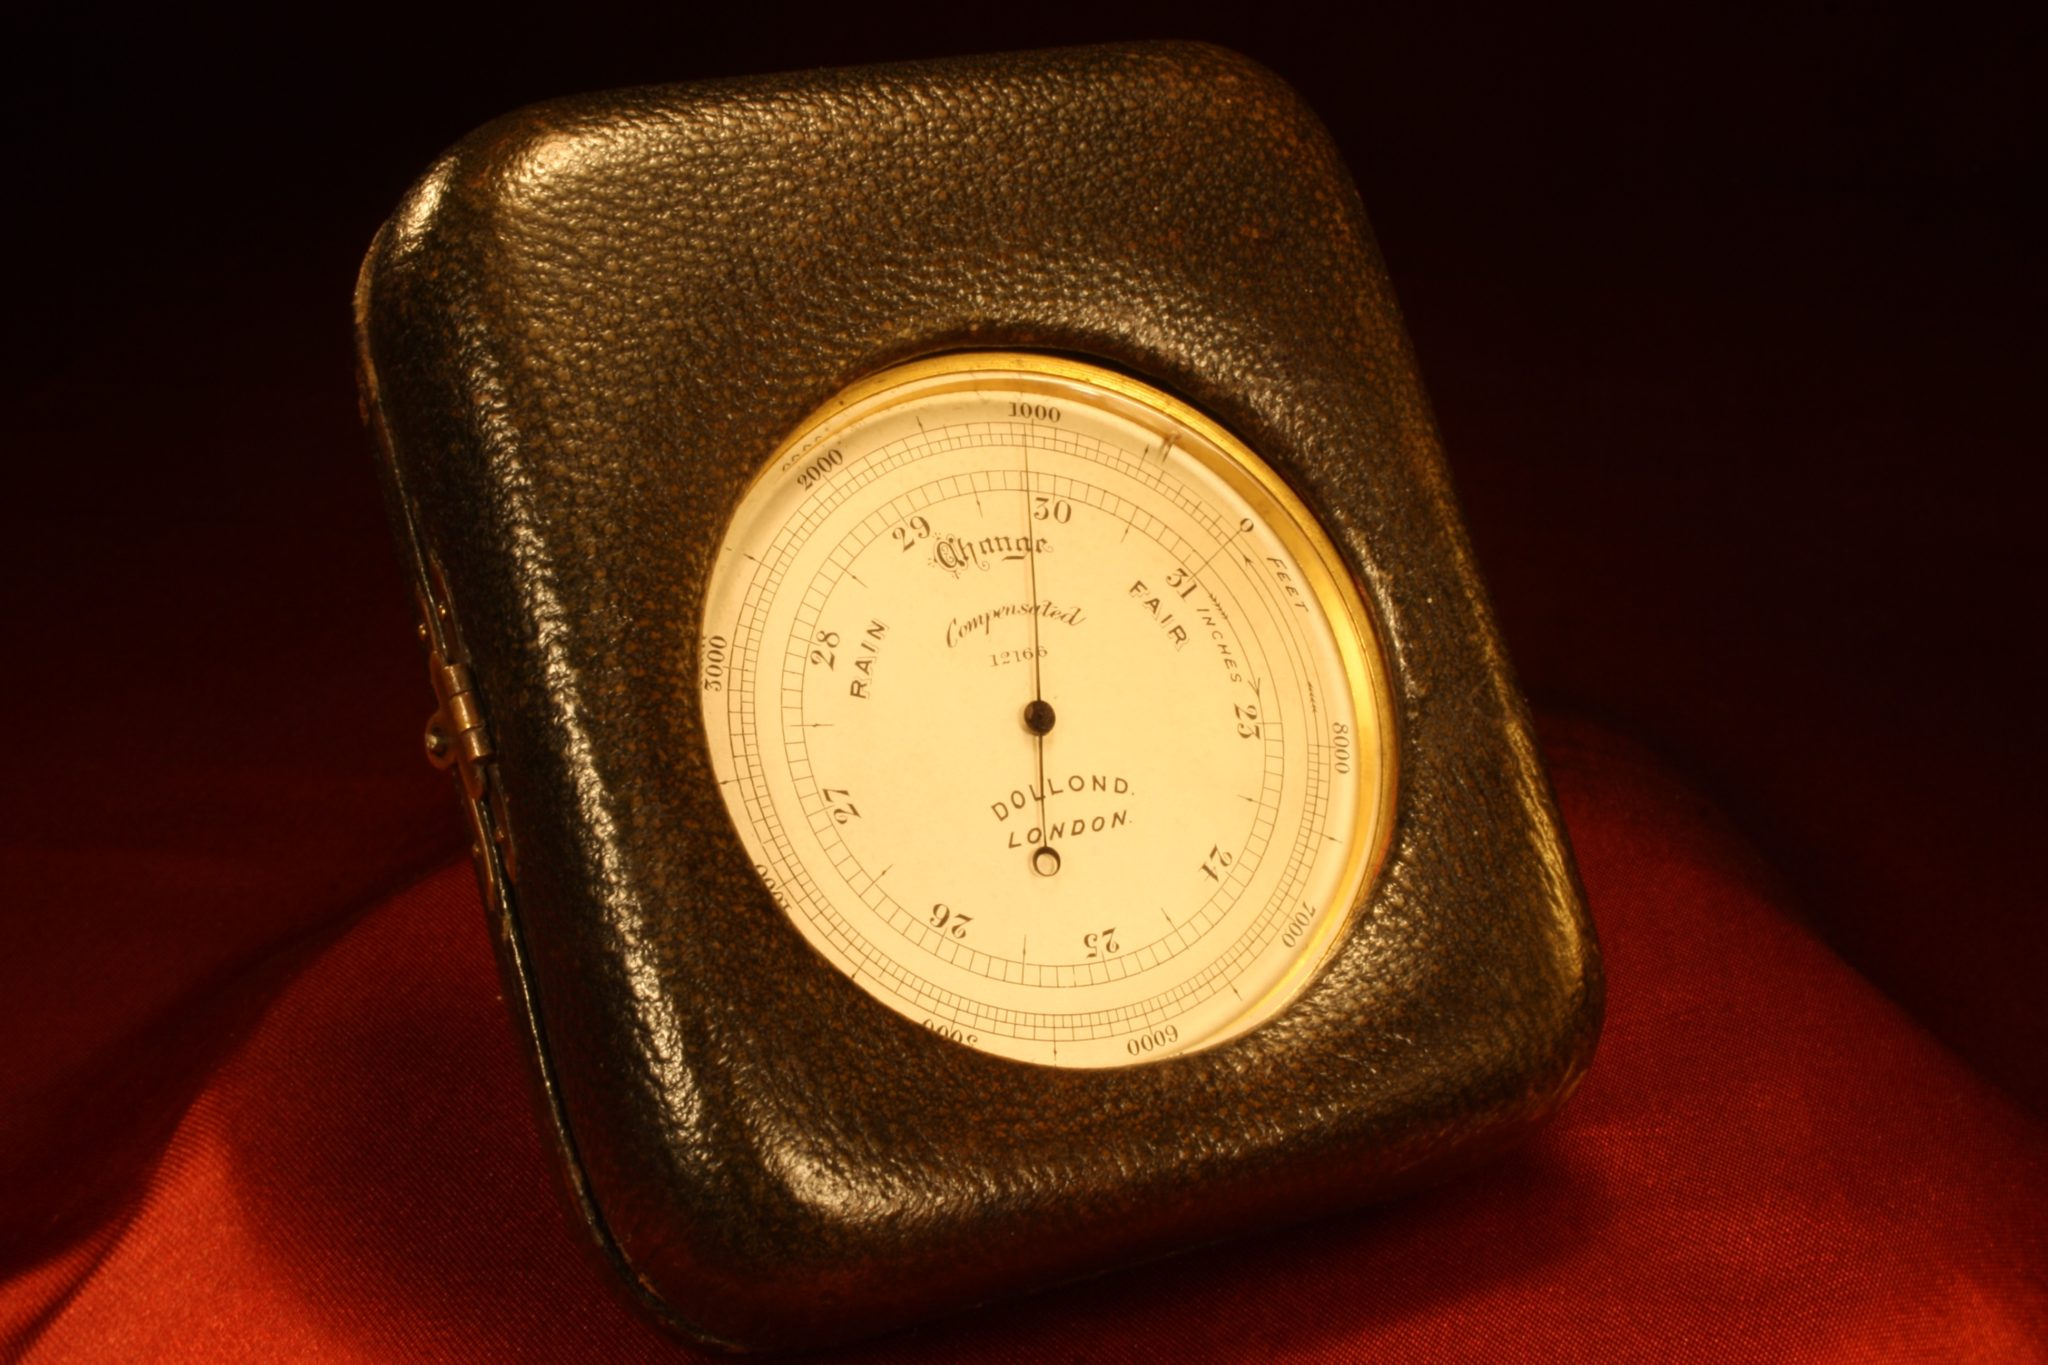 Image of Dollond Pocket Barometer No 12166 c1910